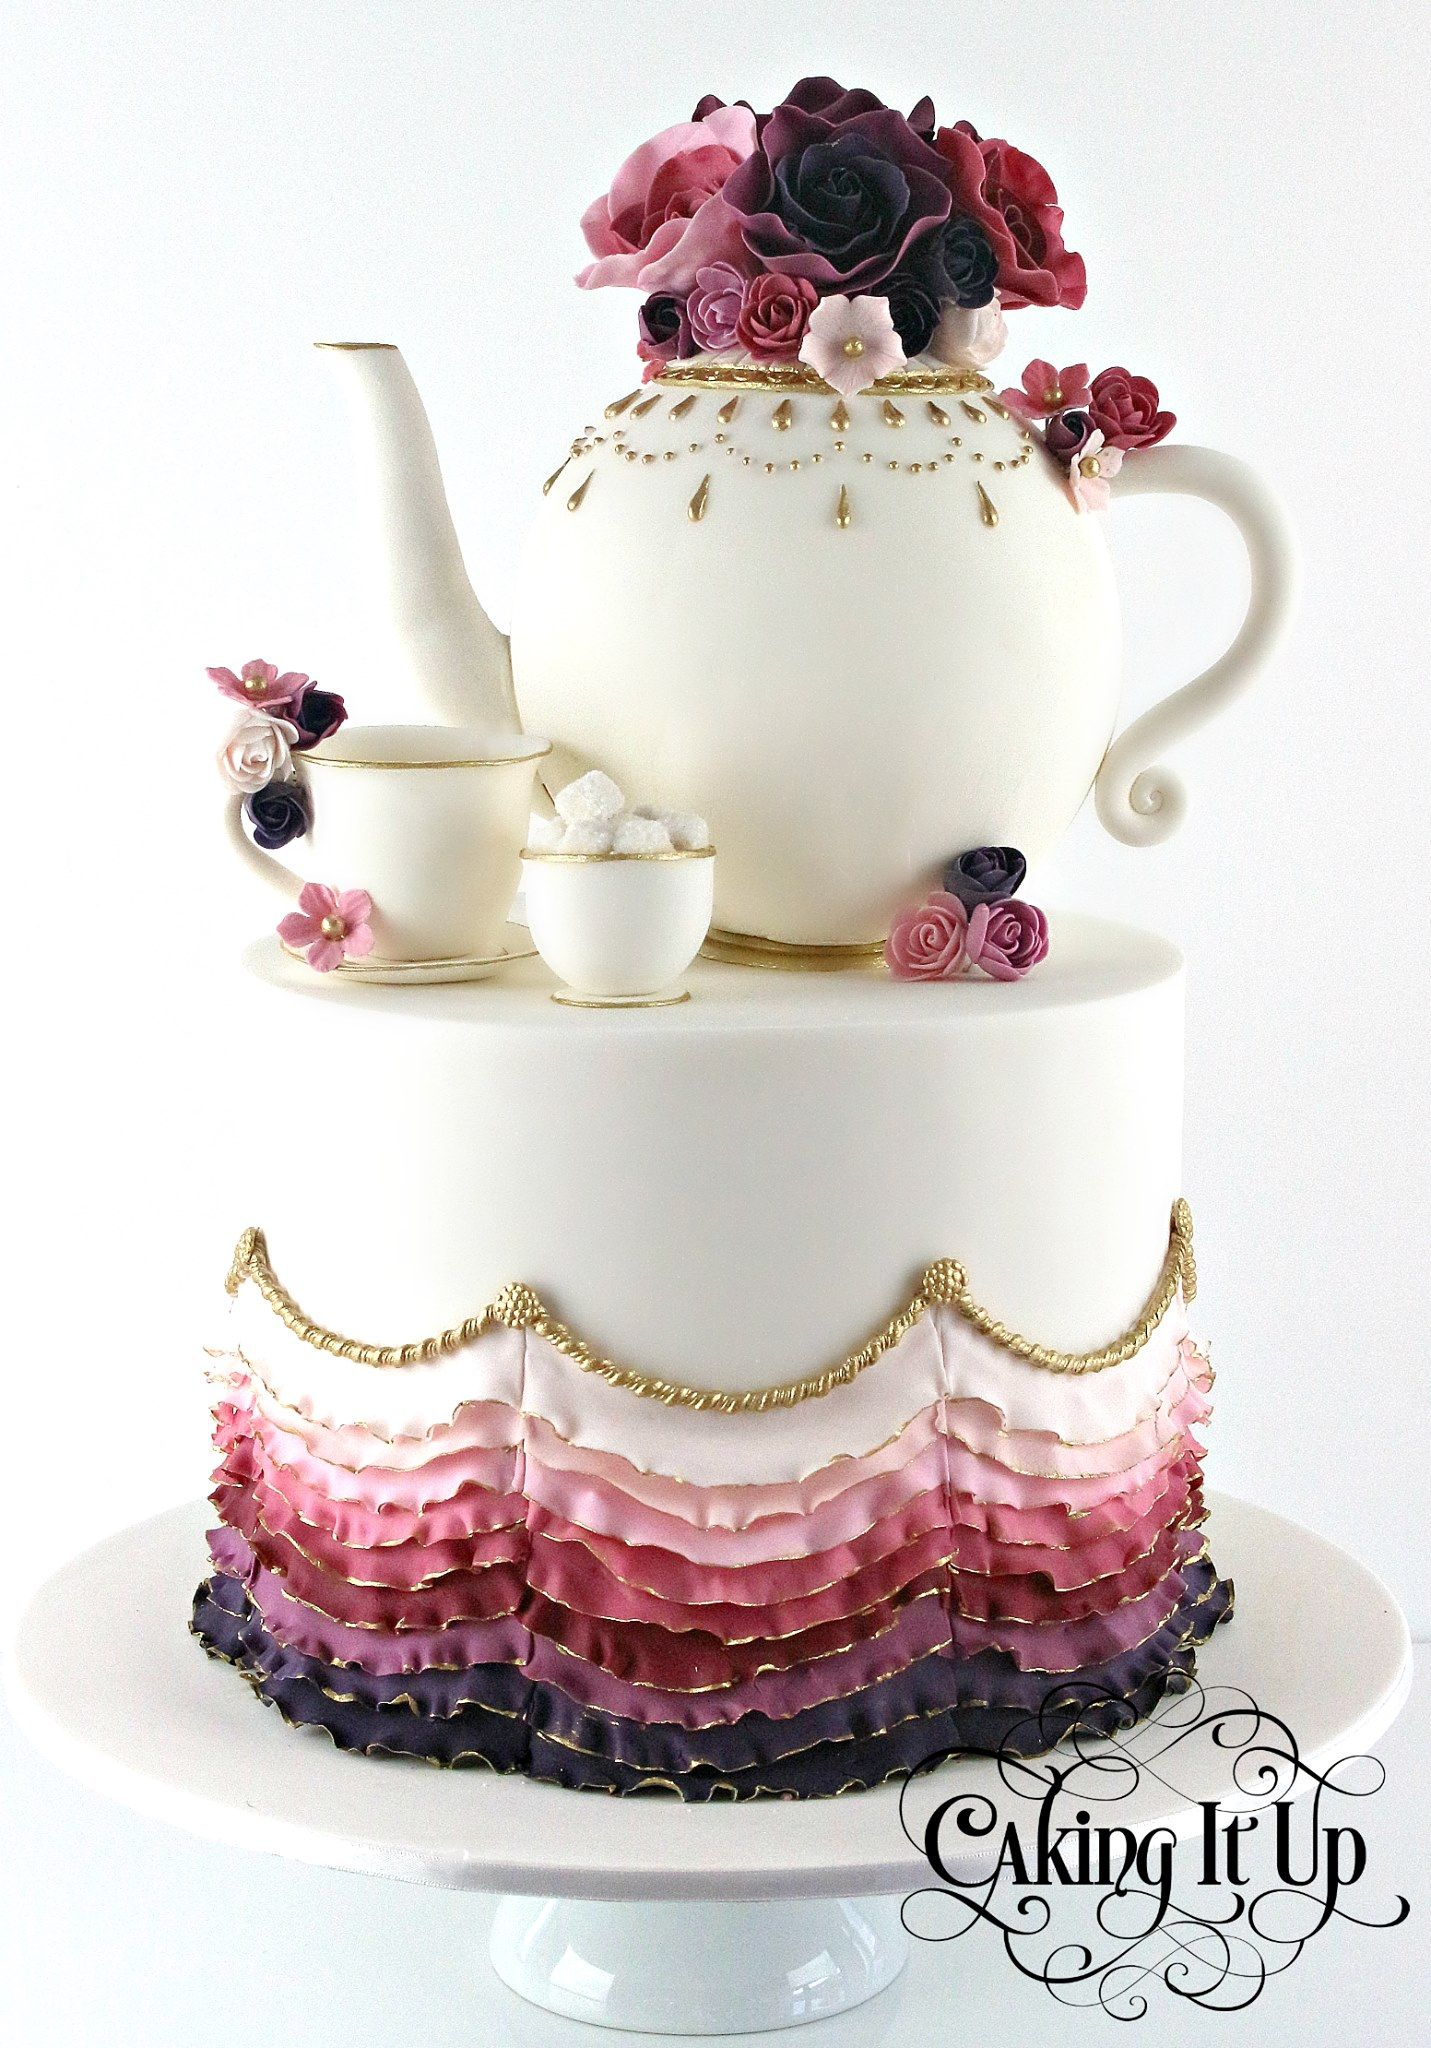 Caking It Up | Cakes - Food & Kitchen | Pinterest | Cake, Teas and ...